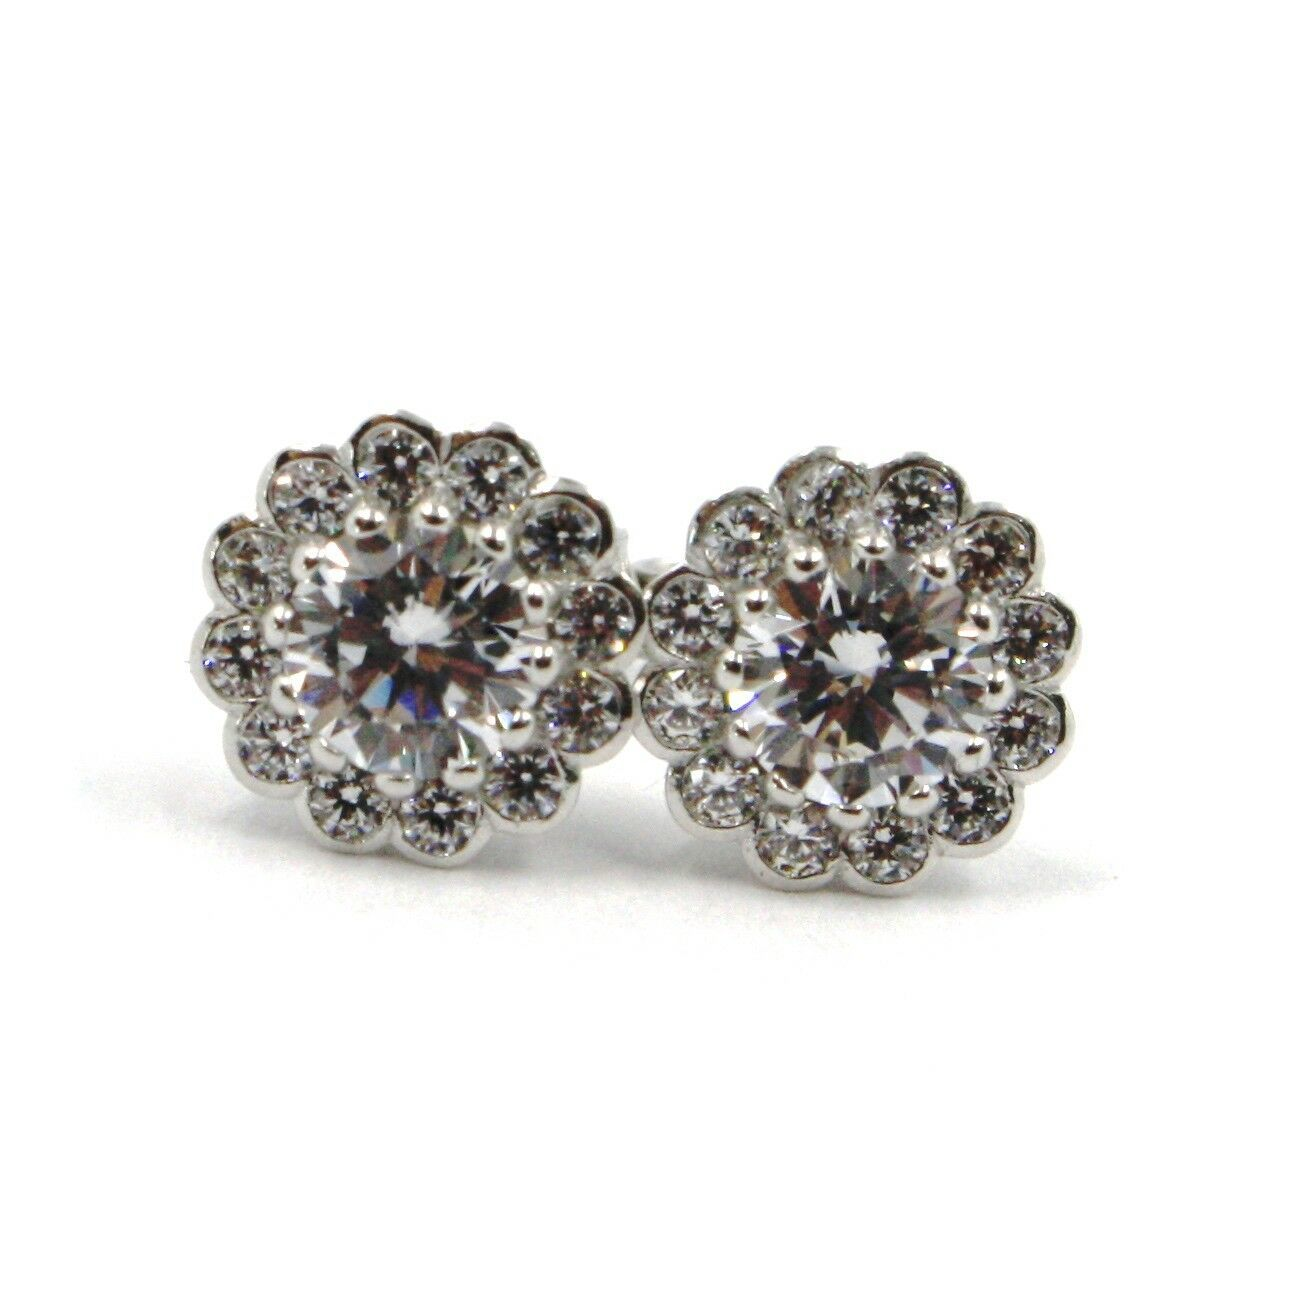 WHITE GOLD EARRINGS 750 18K, ZIRCON CARAT 4, BUTTON, FLOWER, 9 MM